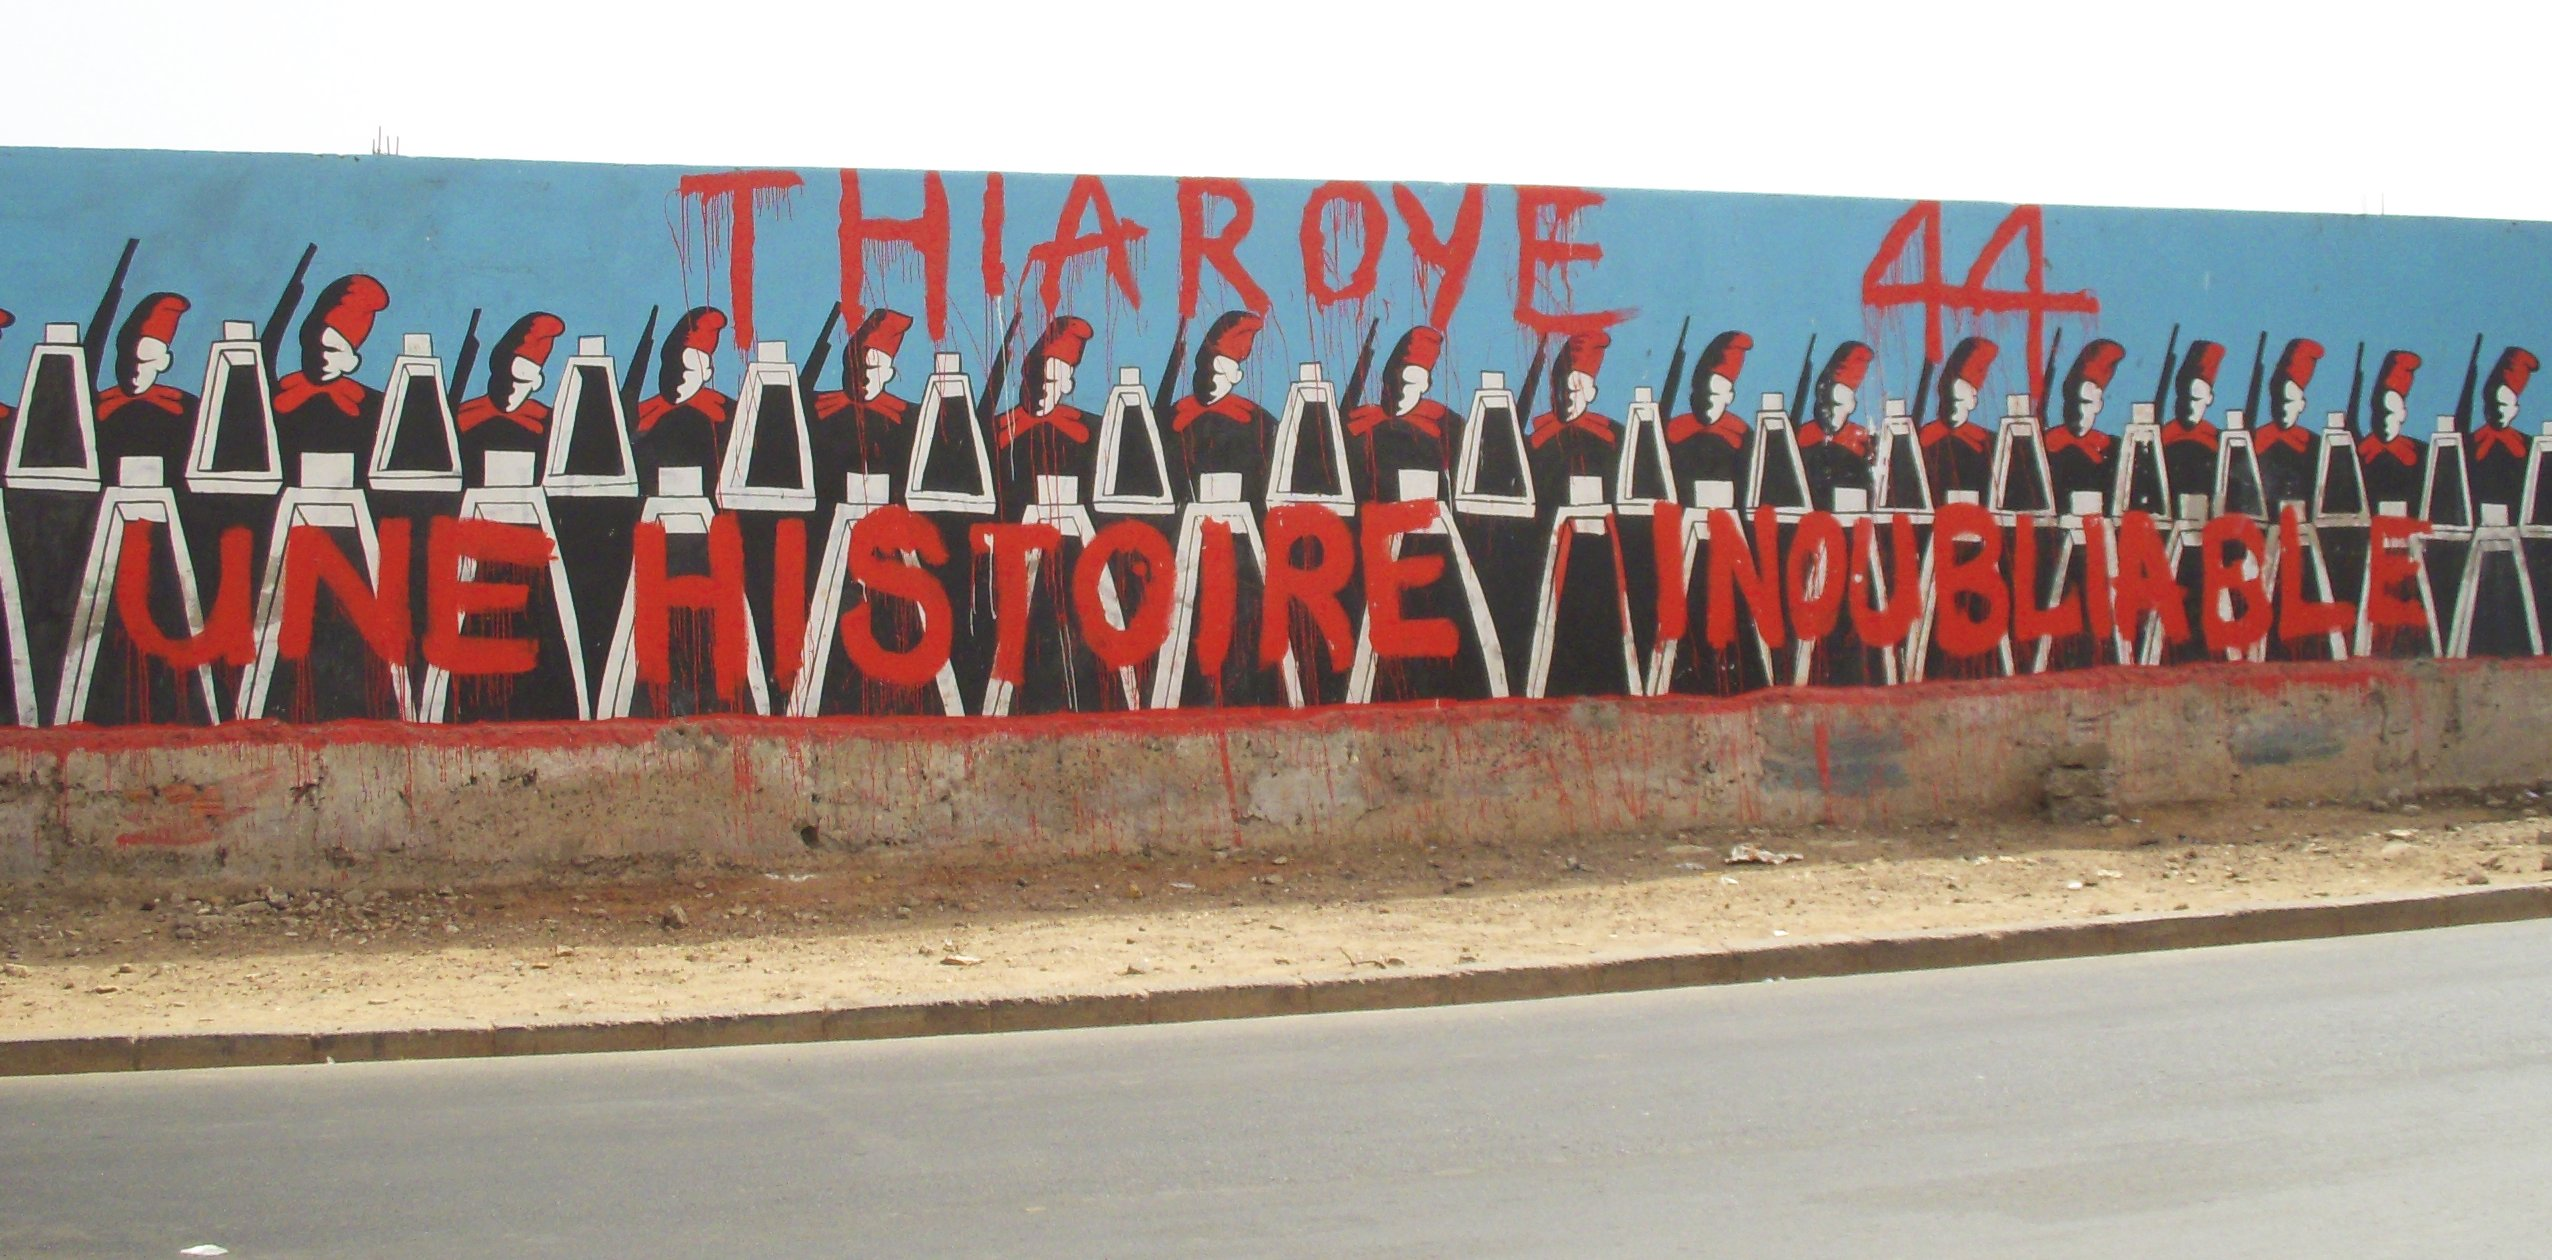 A_mural_in_dakar_senegal_commemerating_the_thiaroye_massacre_of_1944_-_erica_kowal-